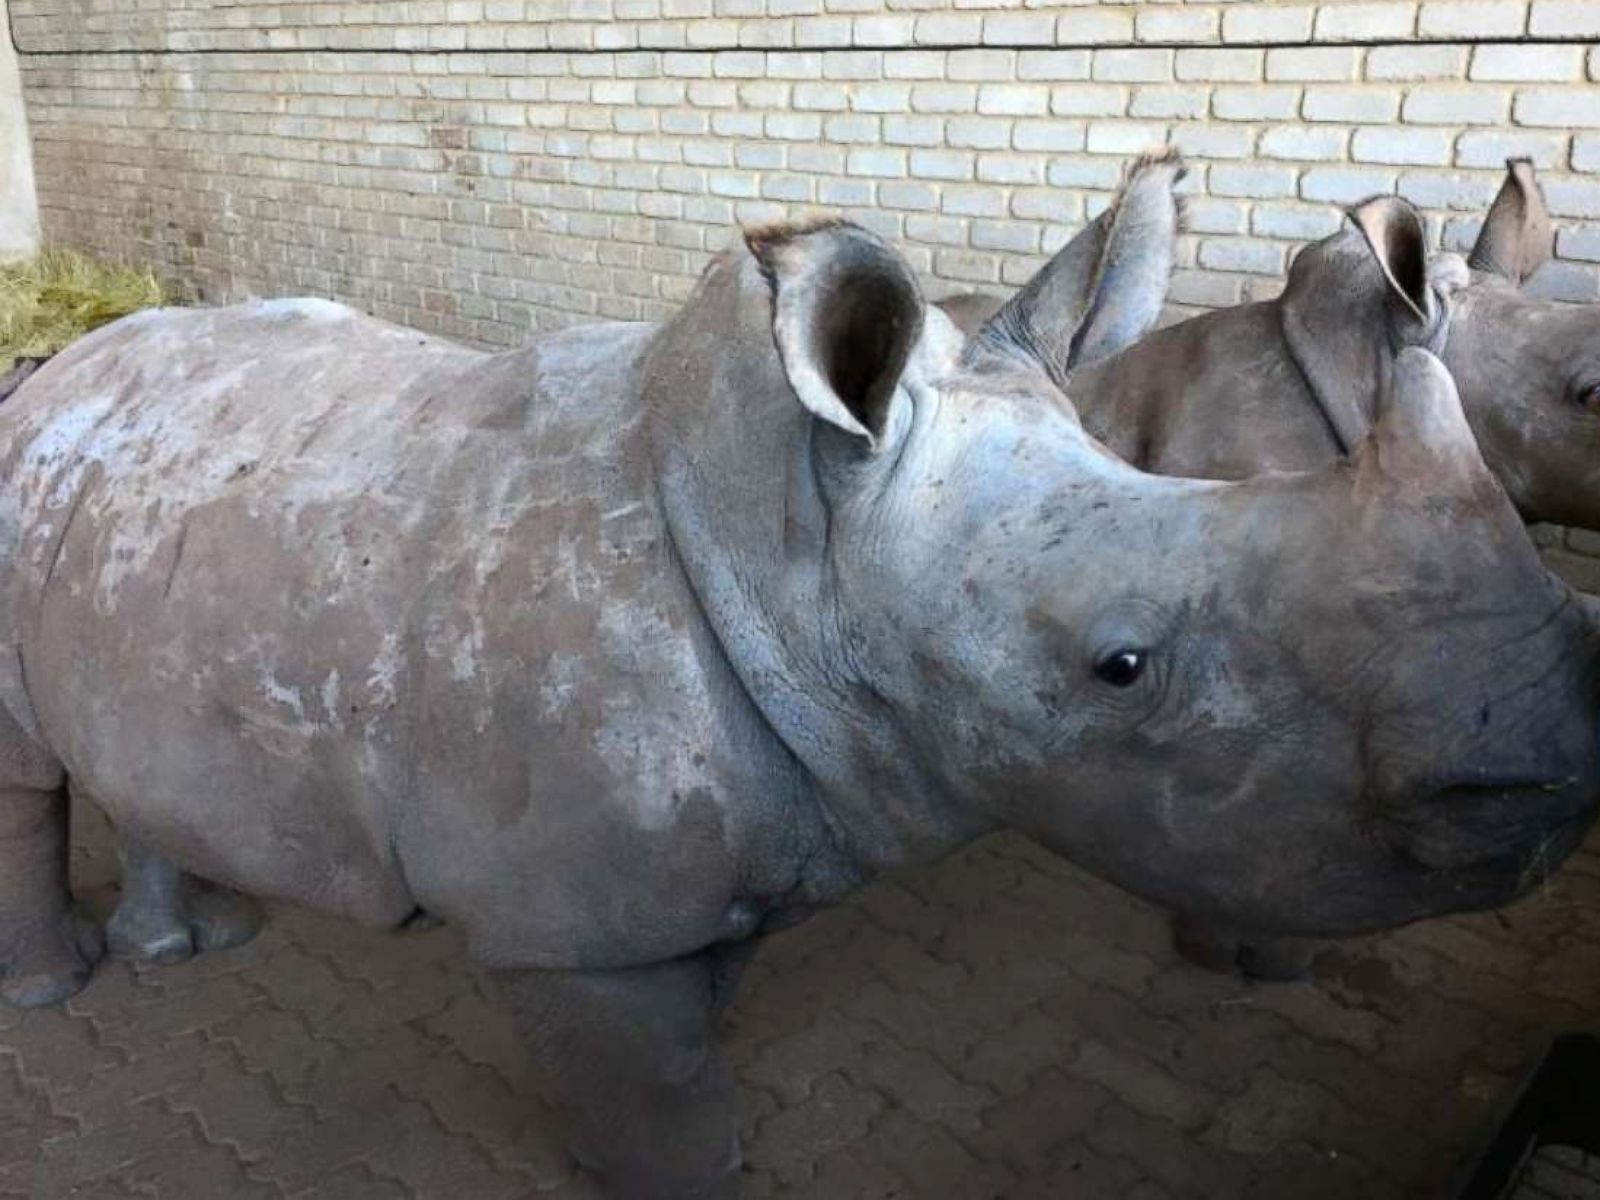 Nonprofit works with veterinarians and farmers to protect rhinos